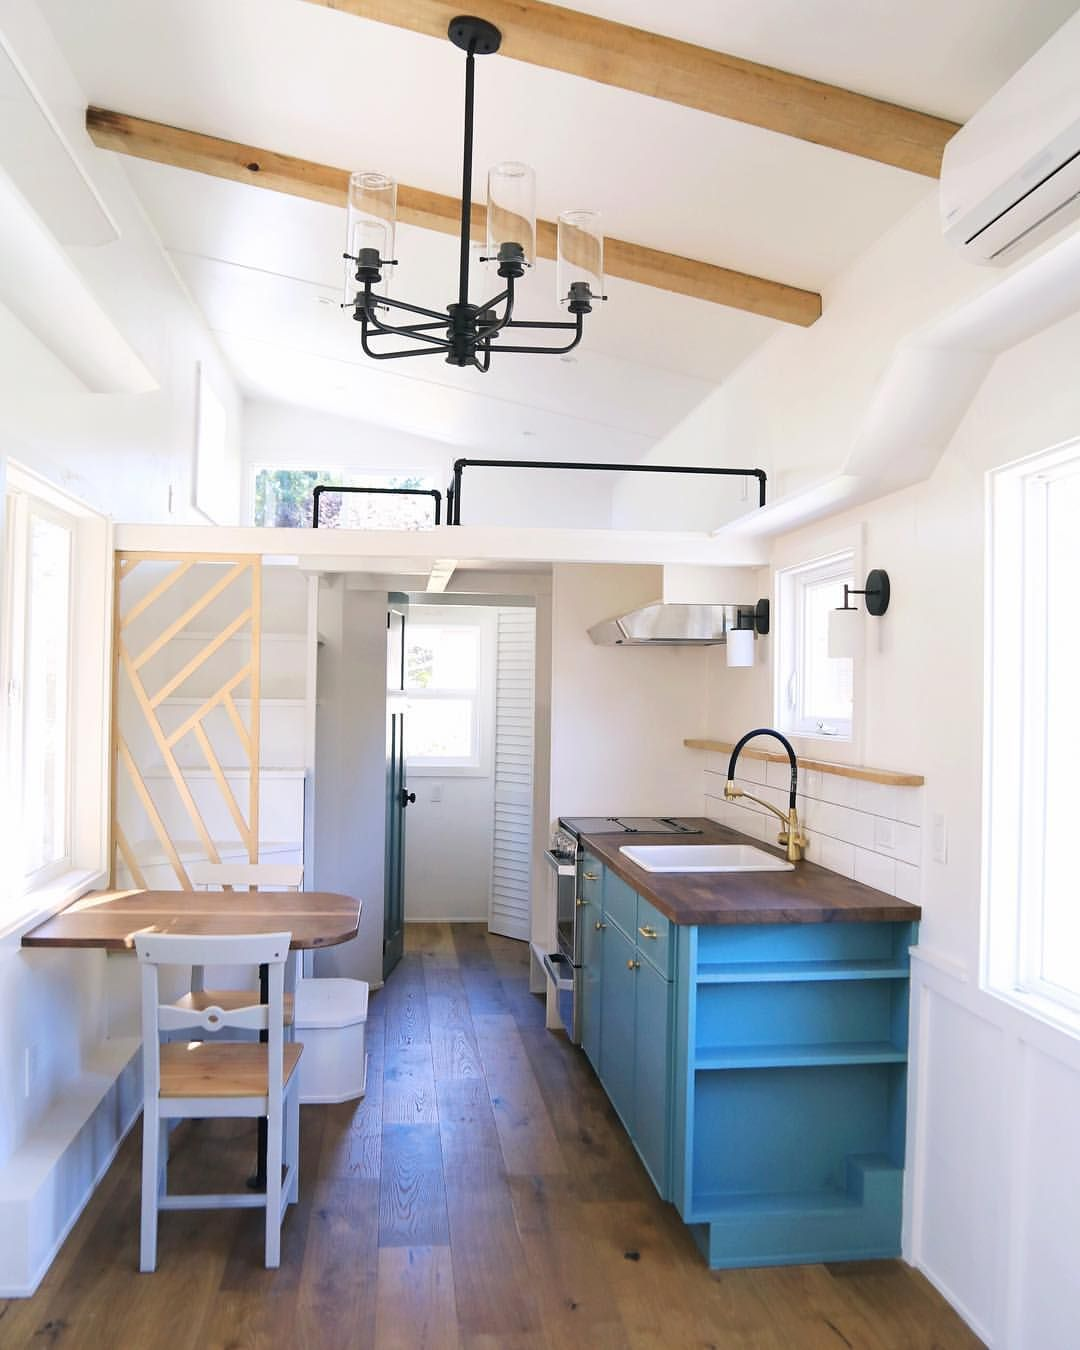 Inside outside small spaces tiny house houses space also pin by grimwood studio on insides  outsides rh pinterest